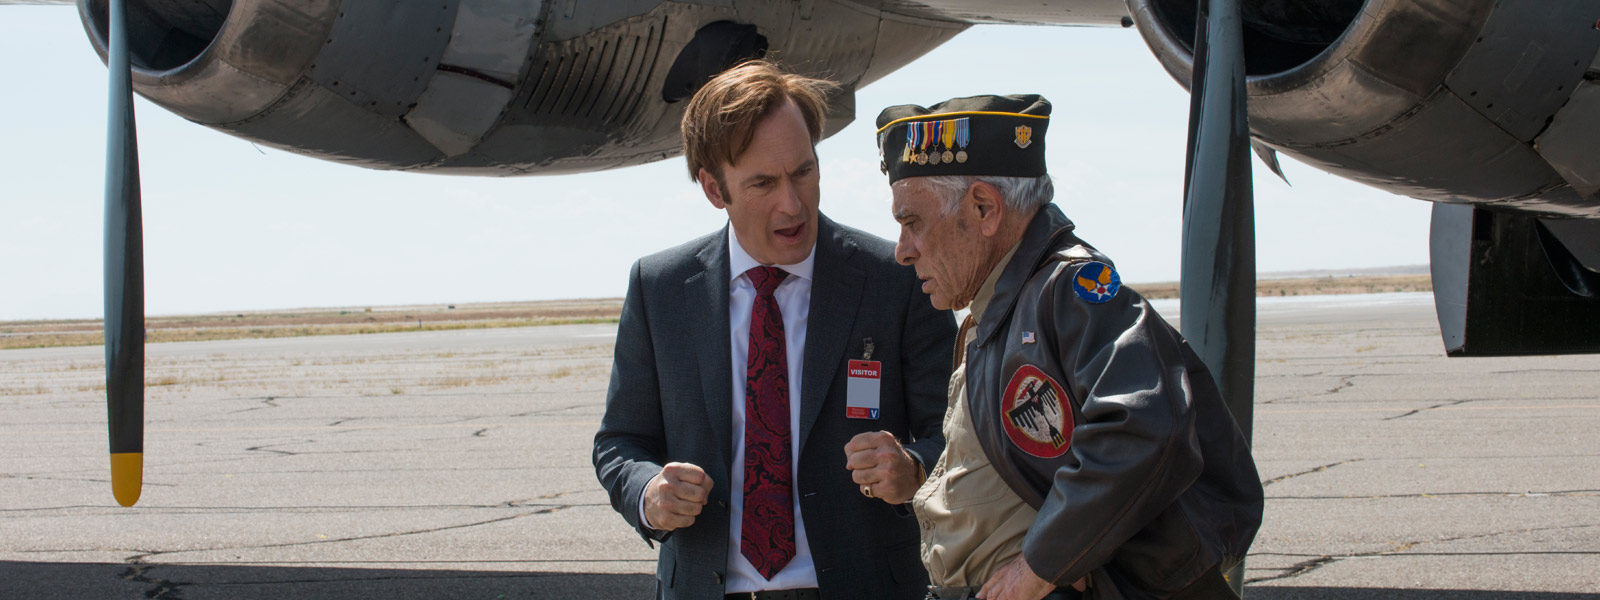 better-call-saul-episode-208-jimmy-odenkirk-post-800×600